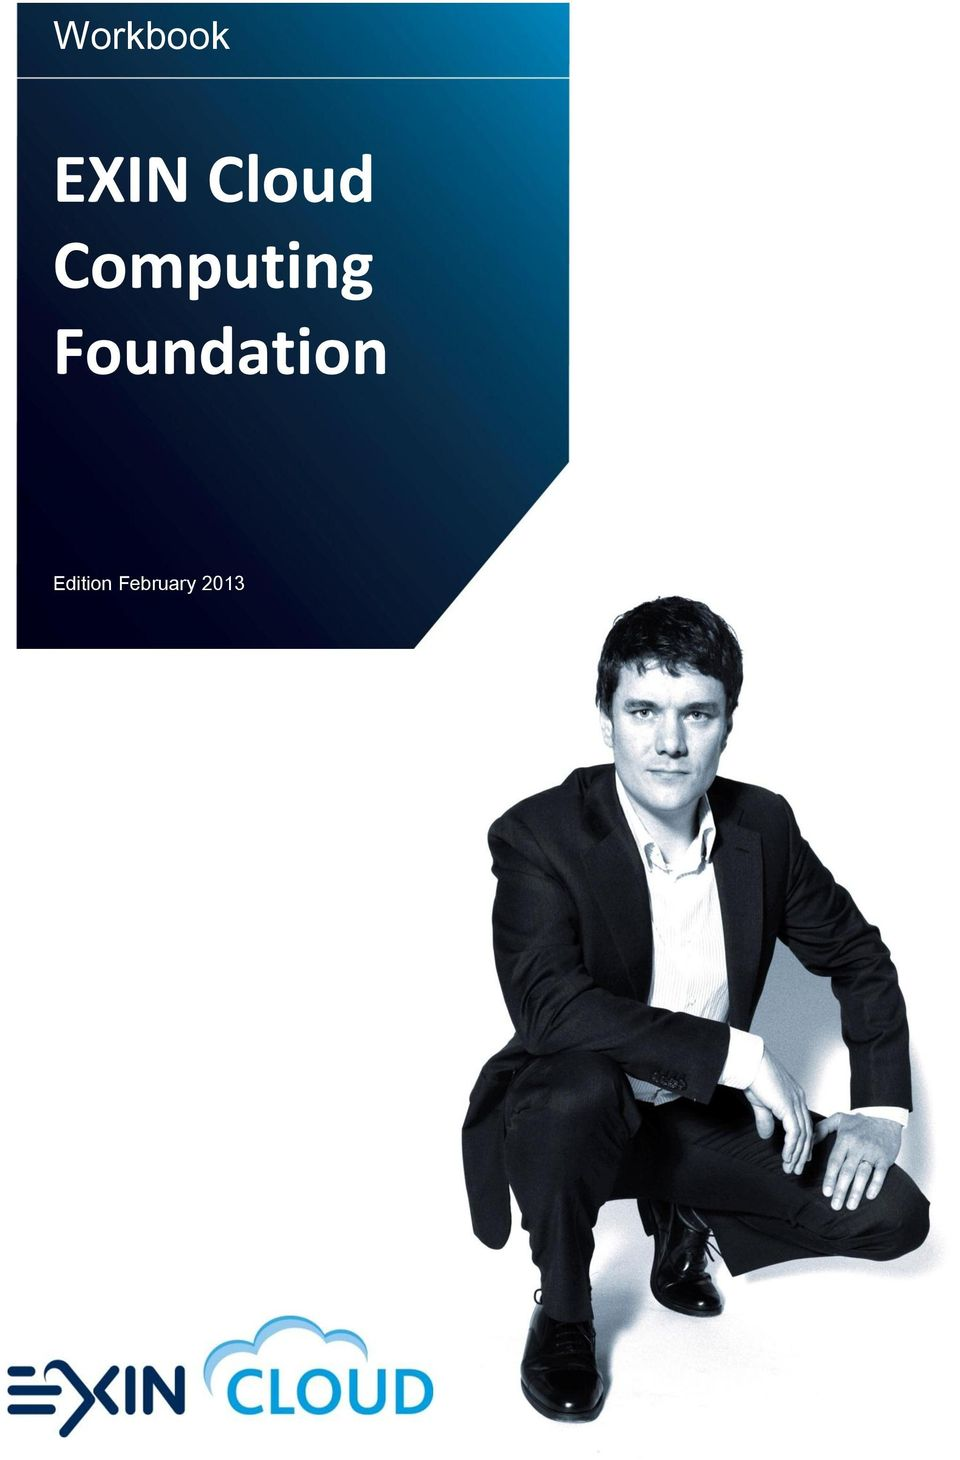 exin cloud computing foundation workbook Download book exin cloud computing foundation workbook free at link below, by martine van der steeg isbn : 9789087538163, 9087538162, fully prepare yourself for the.